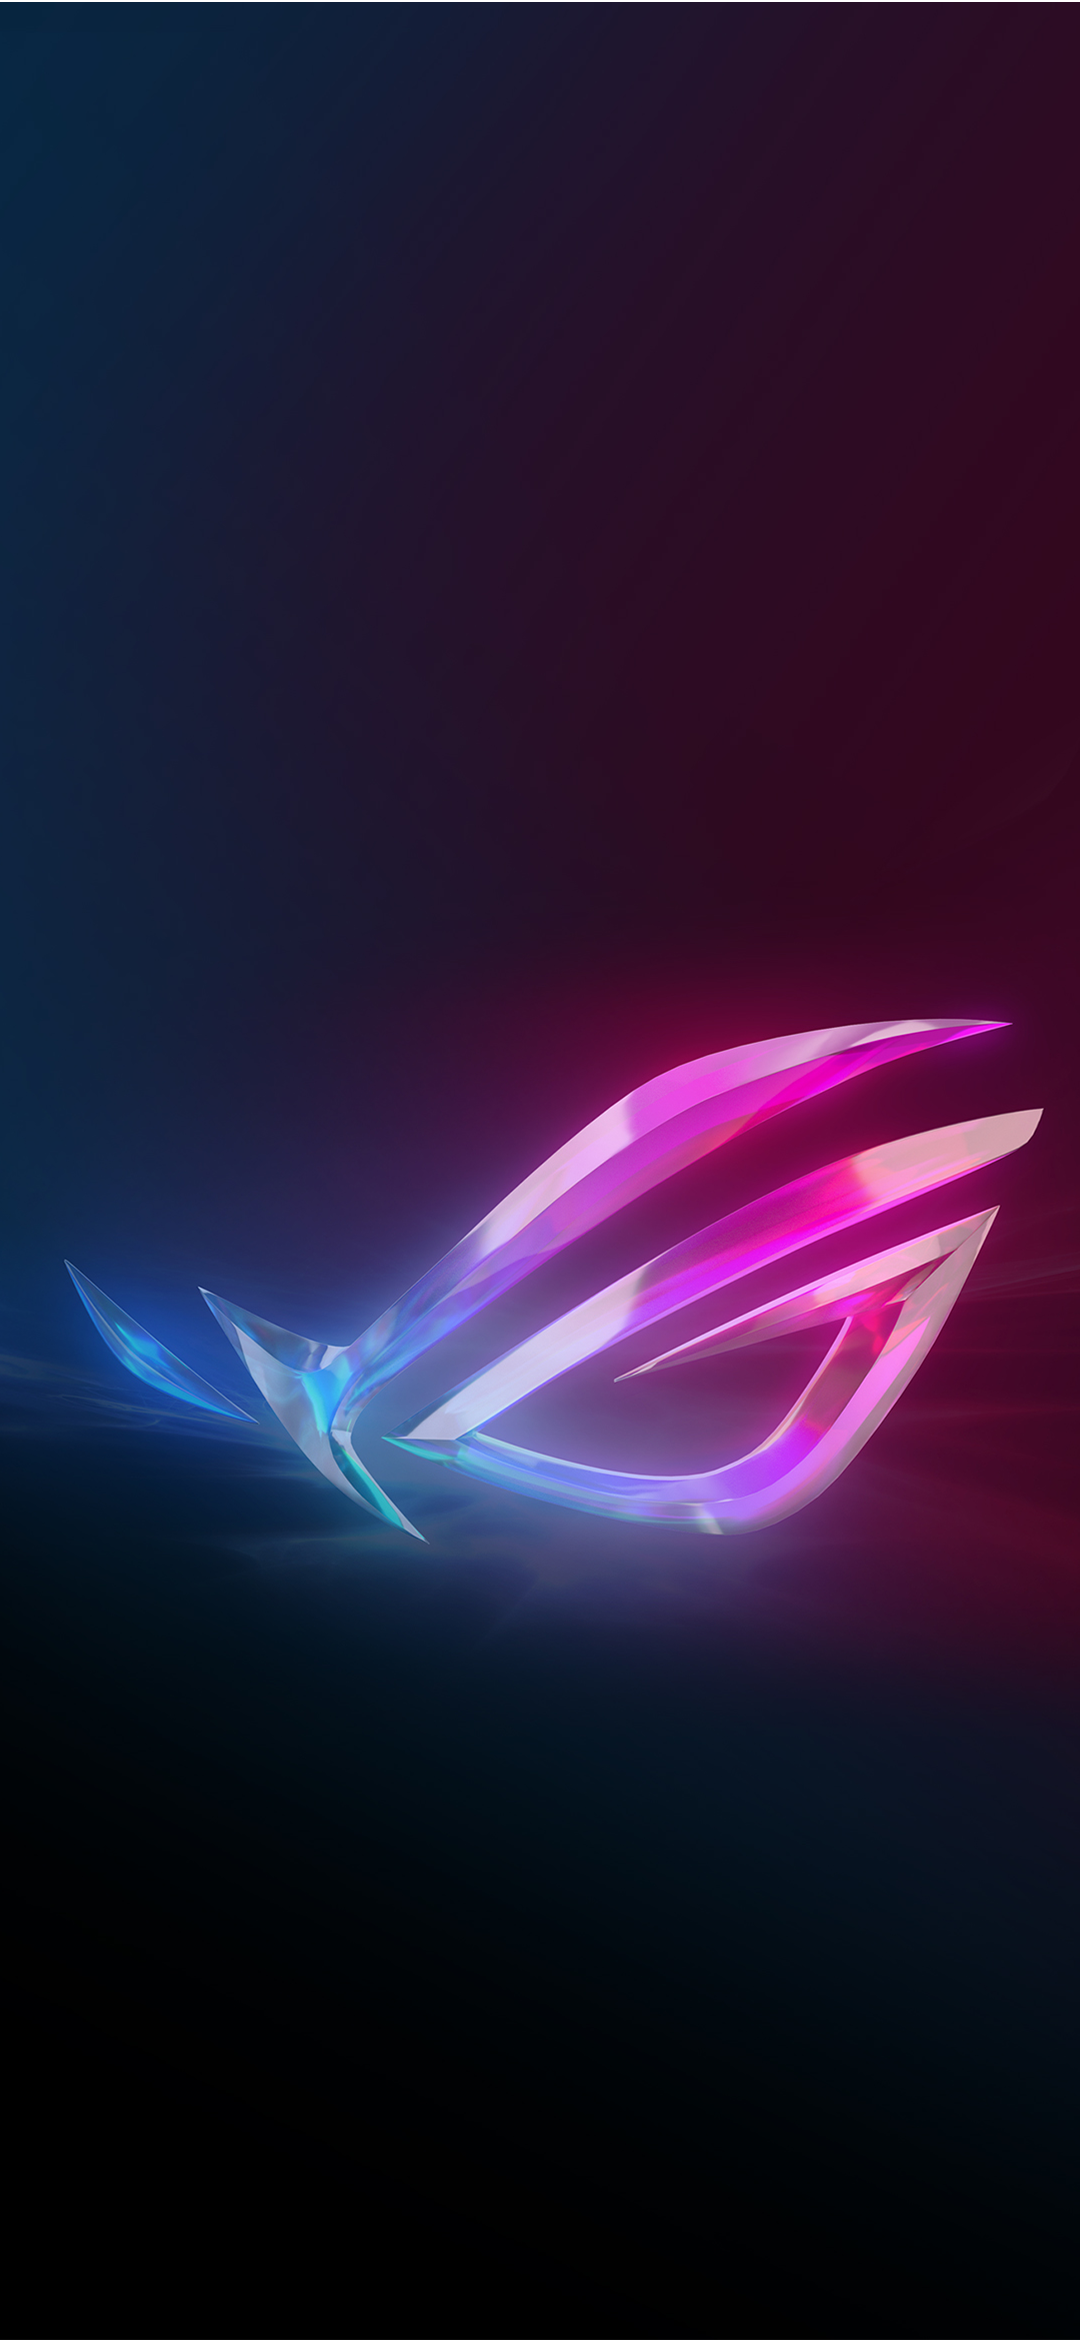 Asus Rog Phone 3 Wallpaper Ytechb Exclusive In 2020 Stock Wallpaper Best Iphone Wallpapers Wallpaper